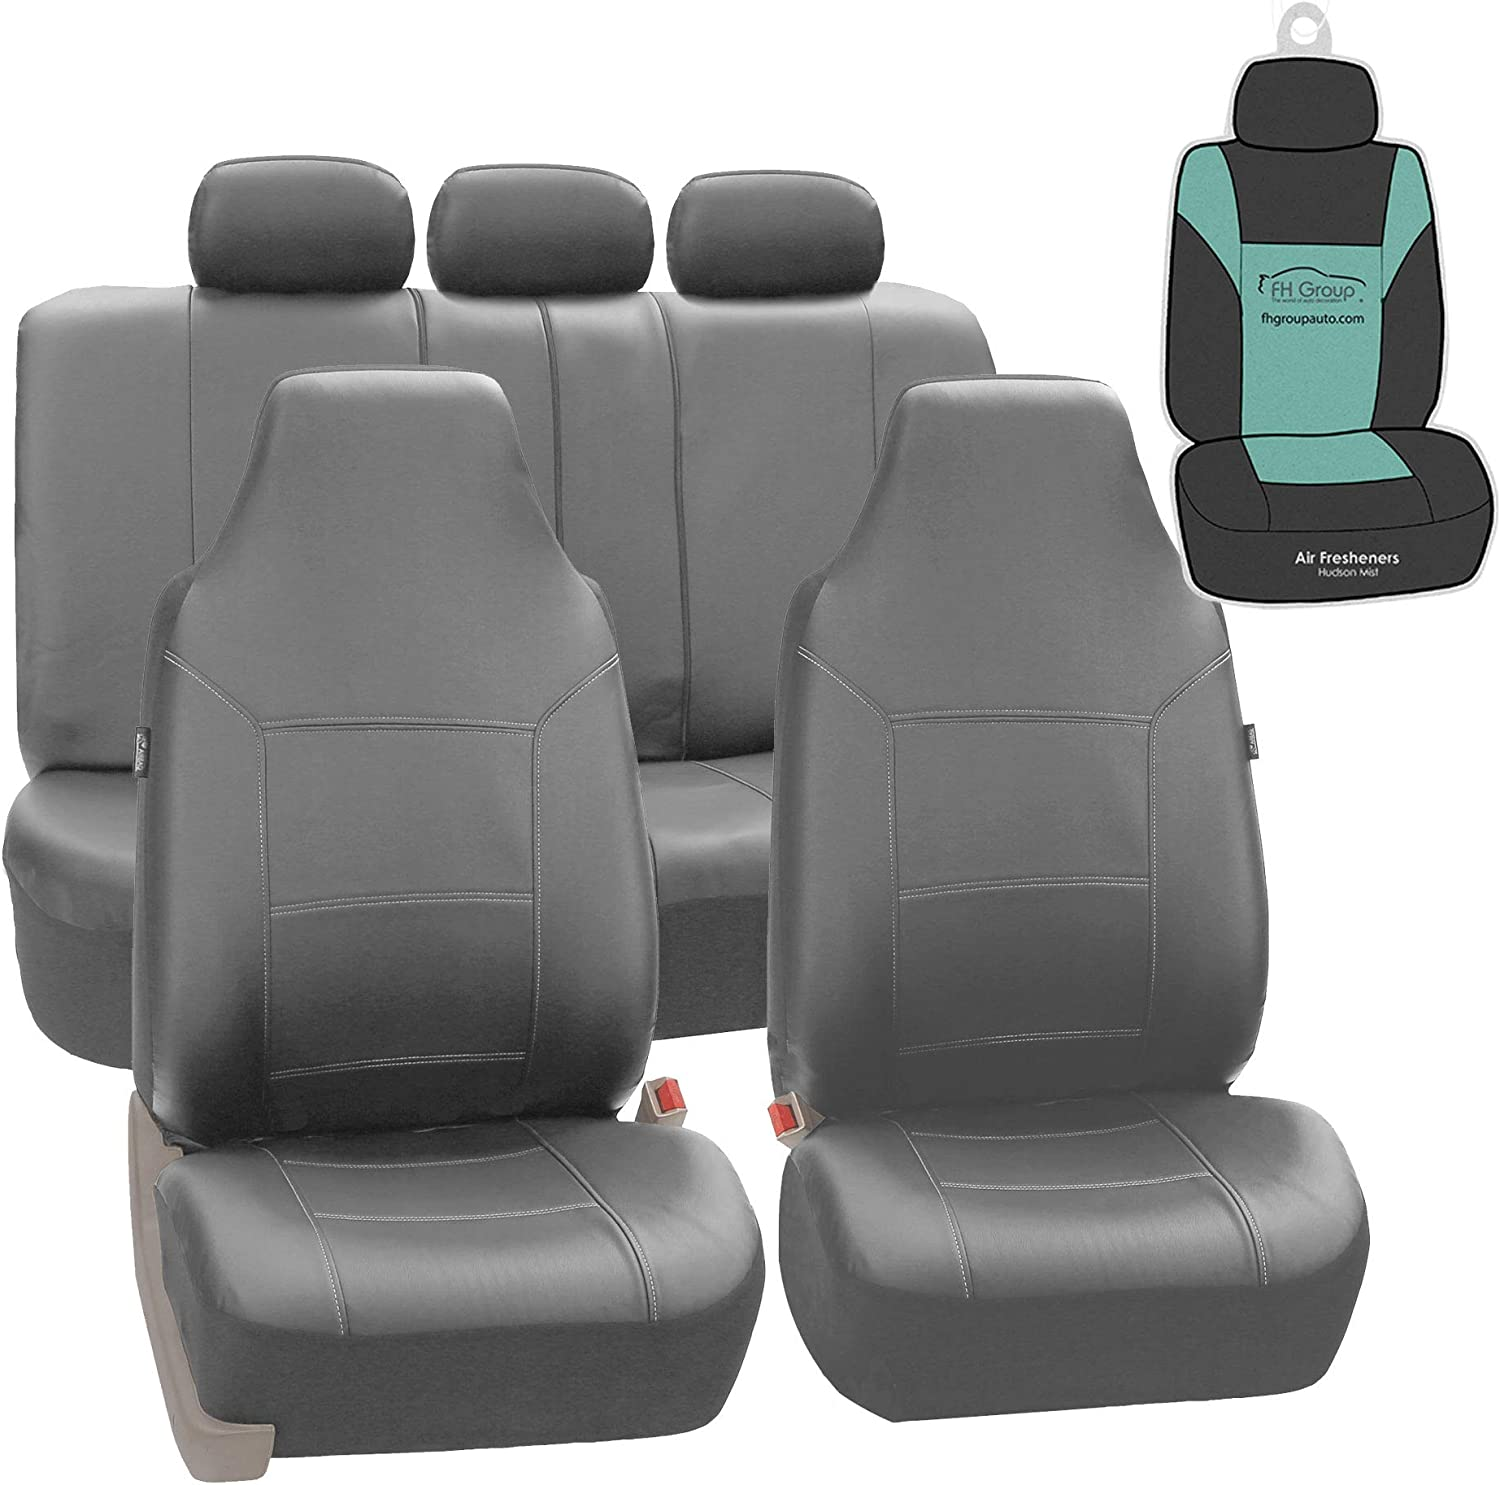 FH Group PU103115 Royal Leather Seat Covers (Gray) Full Set with Gift - Universal Fit for Cars, Trucks & SUVs